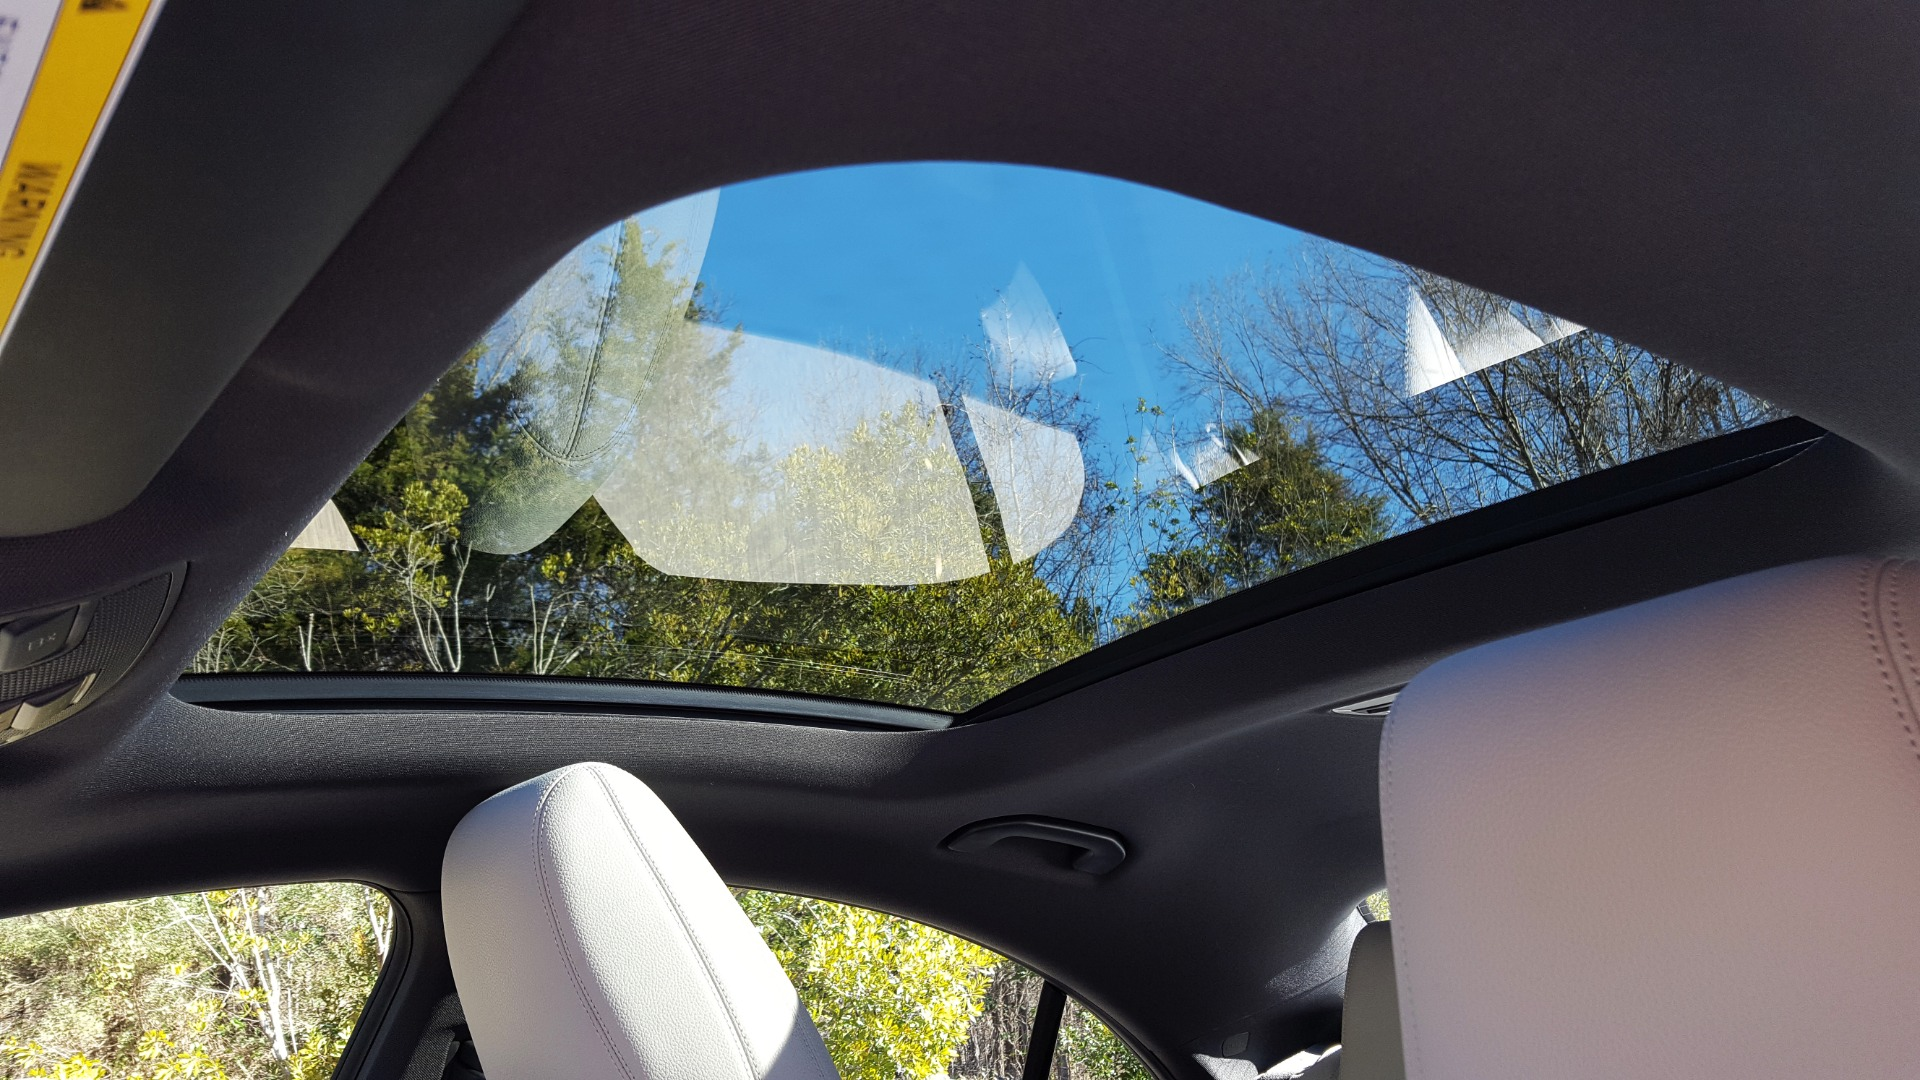 Used 2014 Mercedes-Benz CLA-CLASS CLA 250 / NAV / PANO-ROOF / BLIND SPOT ASSIST / XENON HEADLIGHTS for sale $19,995 at Formula Imports in Charlotte NC 28227 46